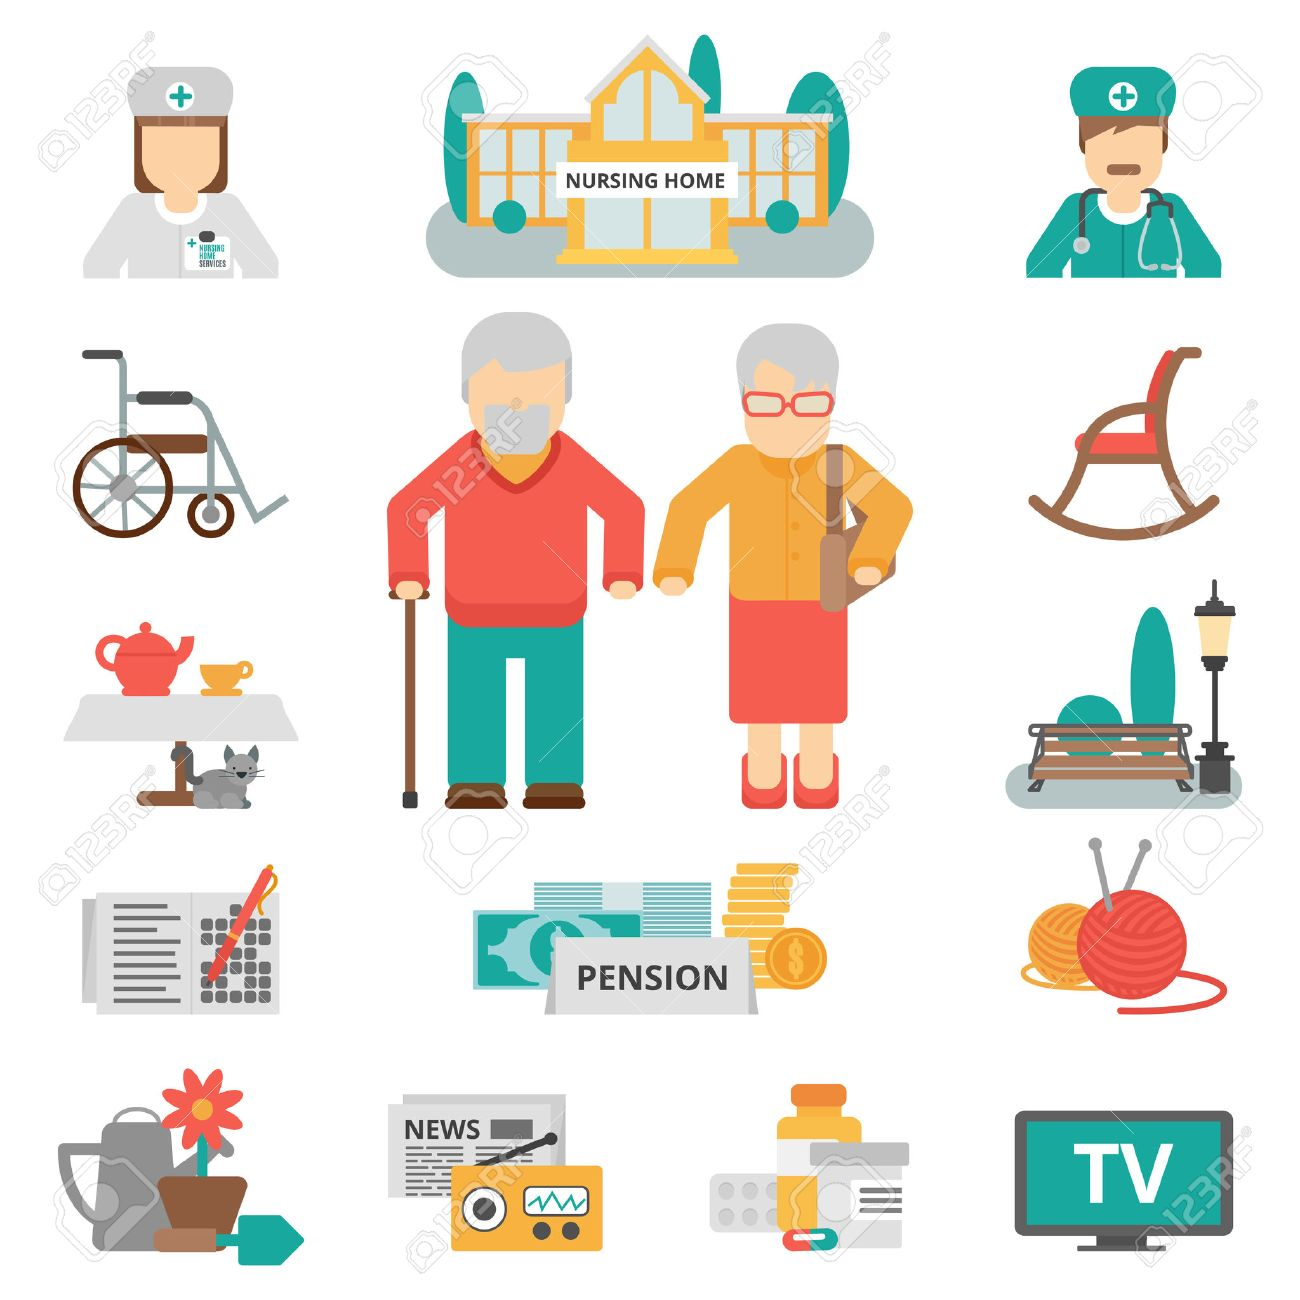 Senior lifestyle flat color icons set with elderly family couple nursing home and items for leisure activities isolated vector illustration Stock Vector - 51757538